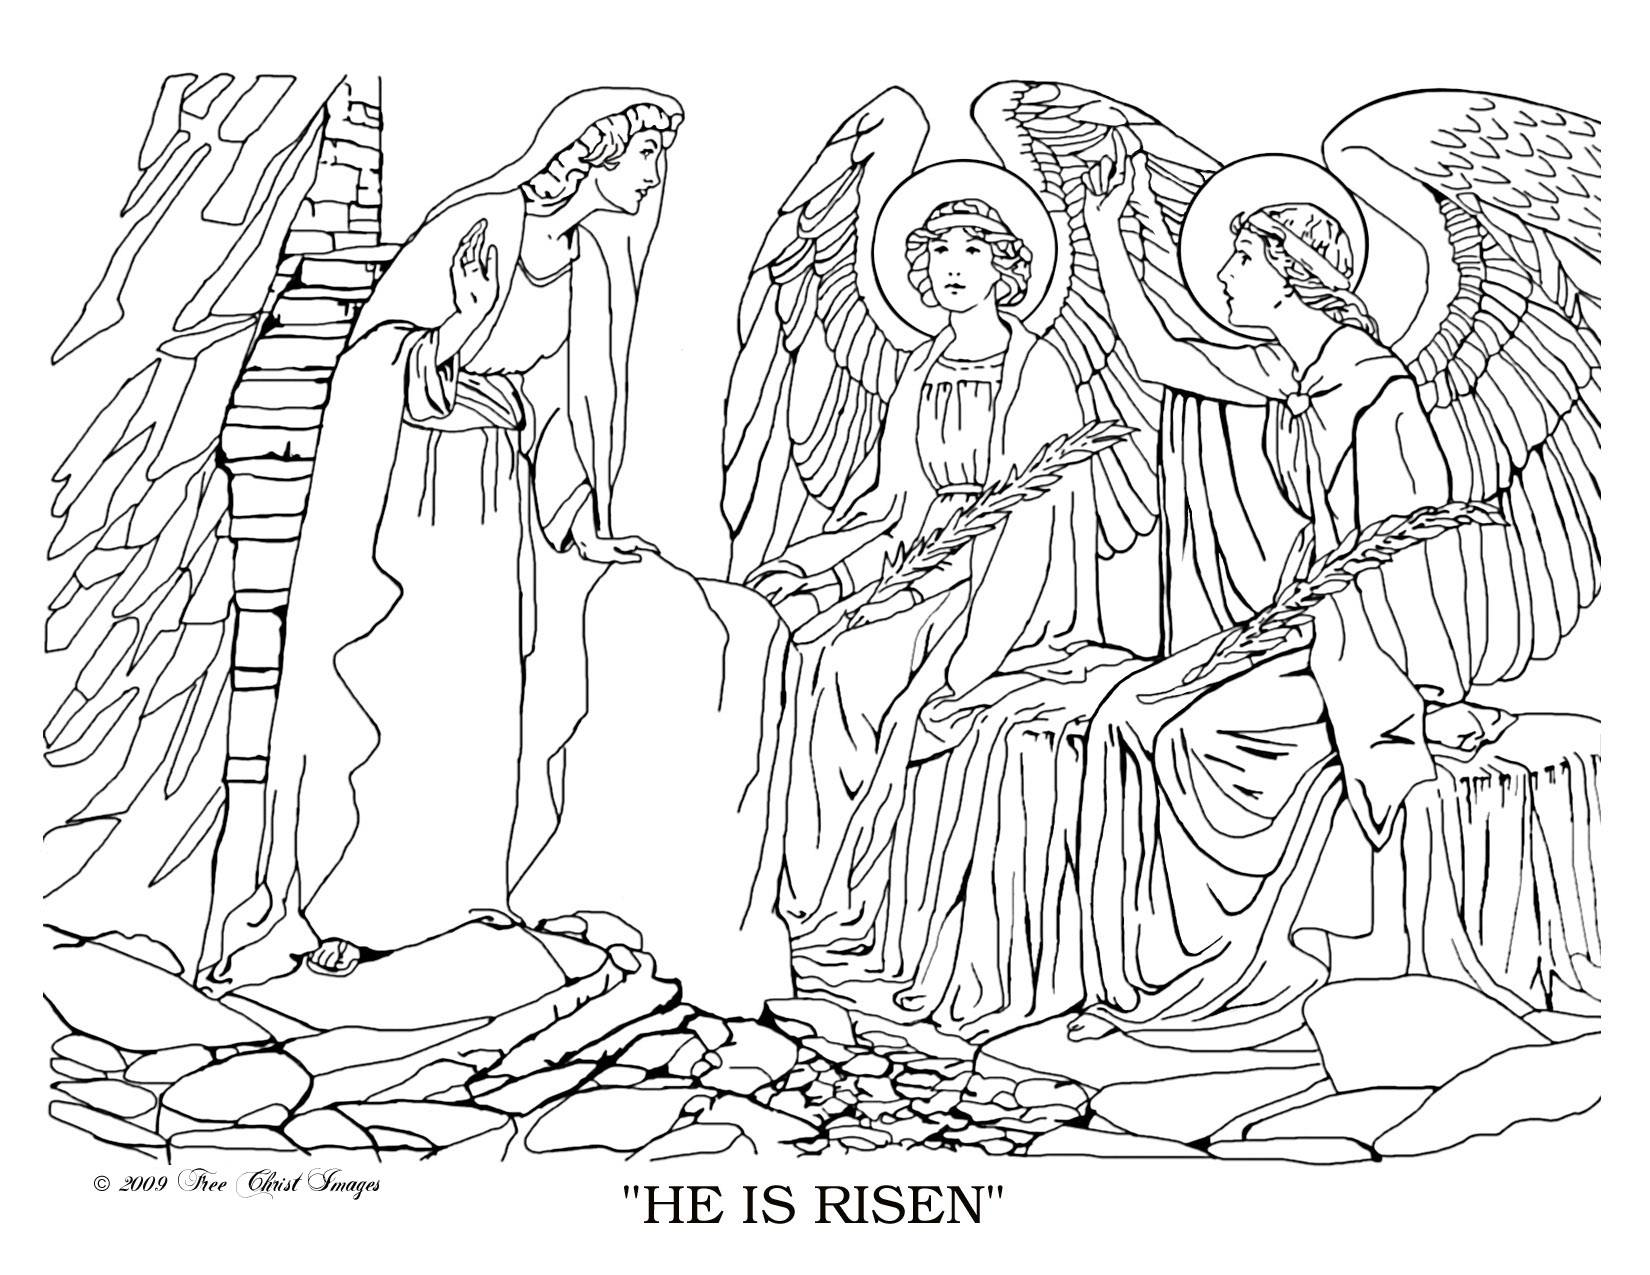 Coloring Page for Risen Jesus on the Road to Emmaus